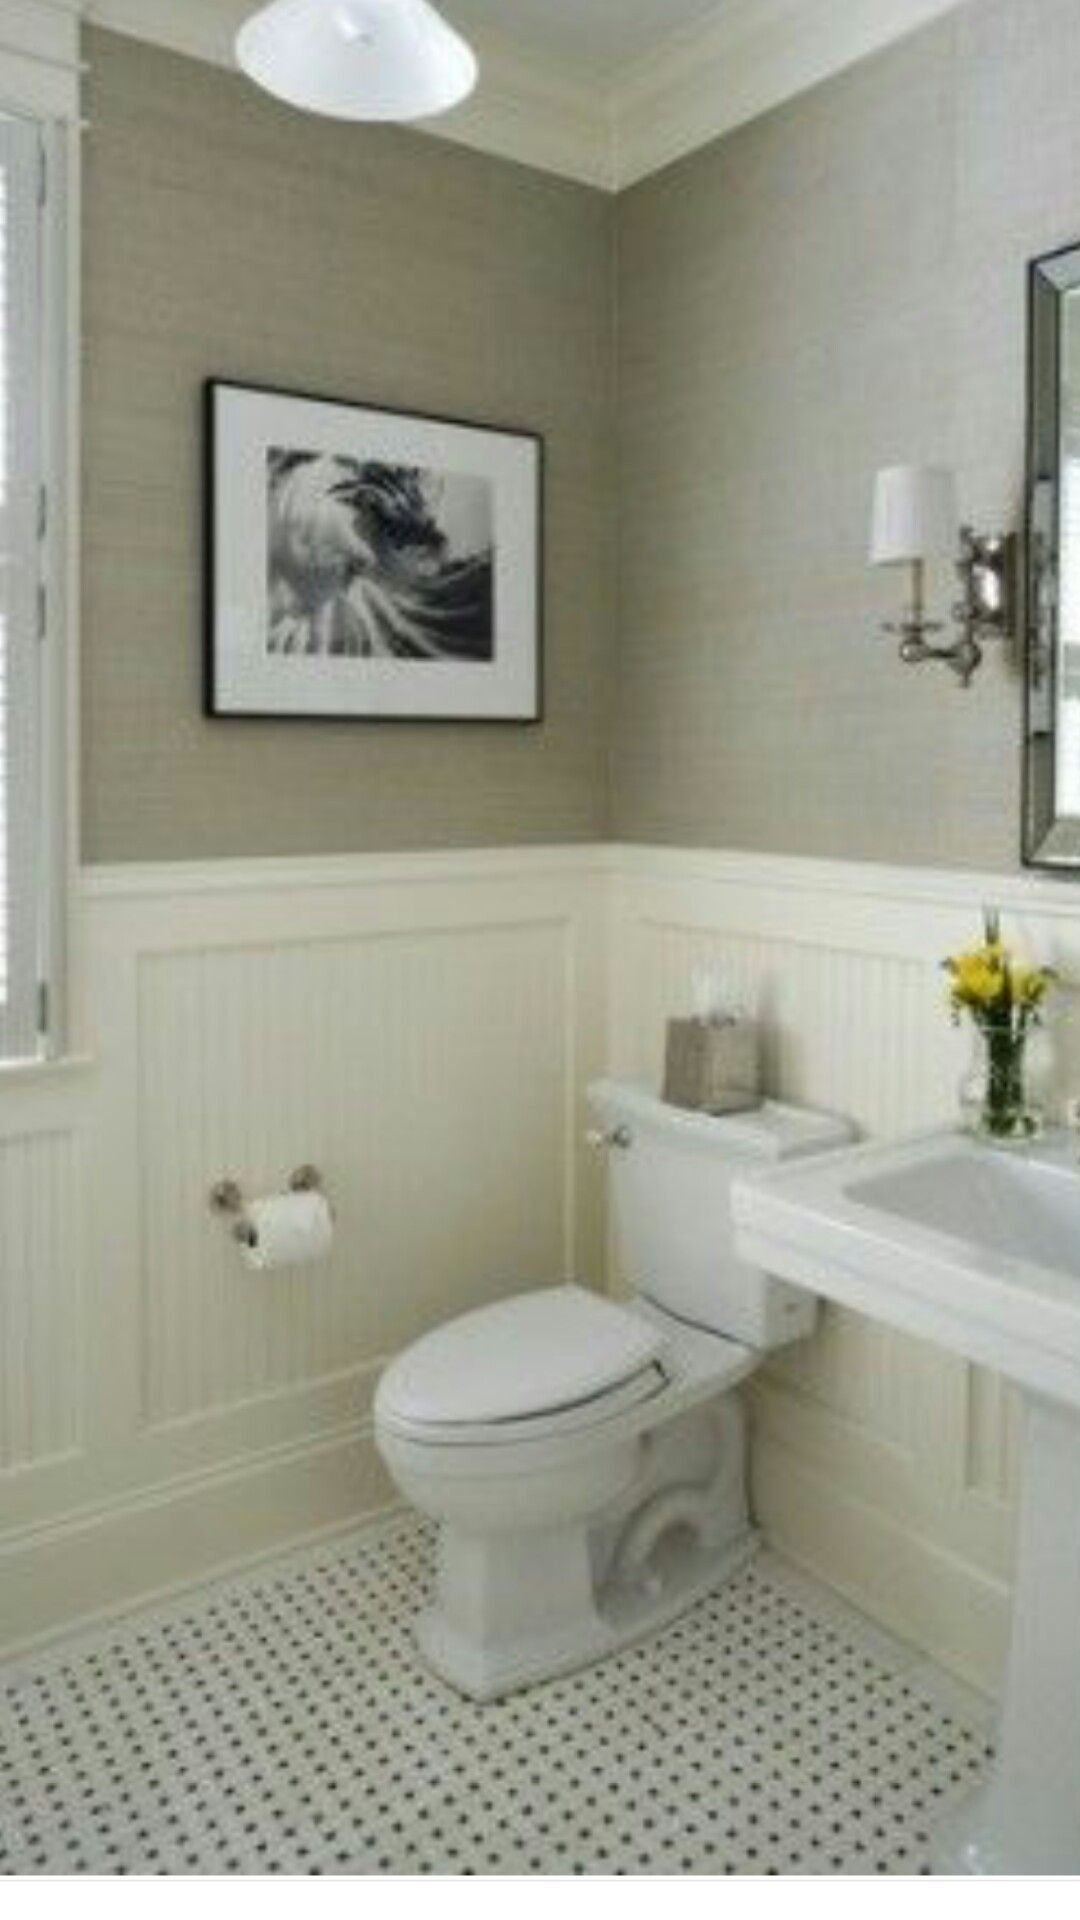 In Modern And Older Homes Bathrooms Are Often Small And Cramped But You Don T Need To Let That Get Yo Small Bathroom Small Bathroom Remodel Bathrooms Remodel